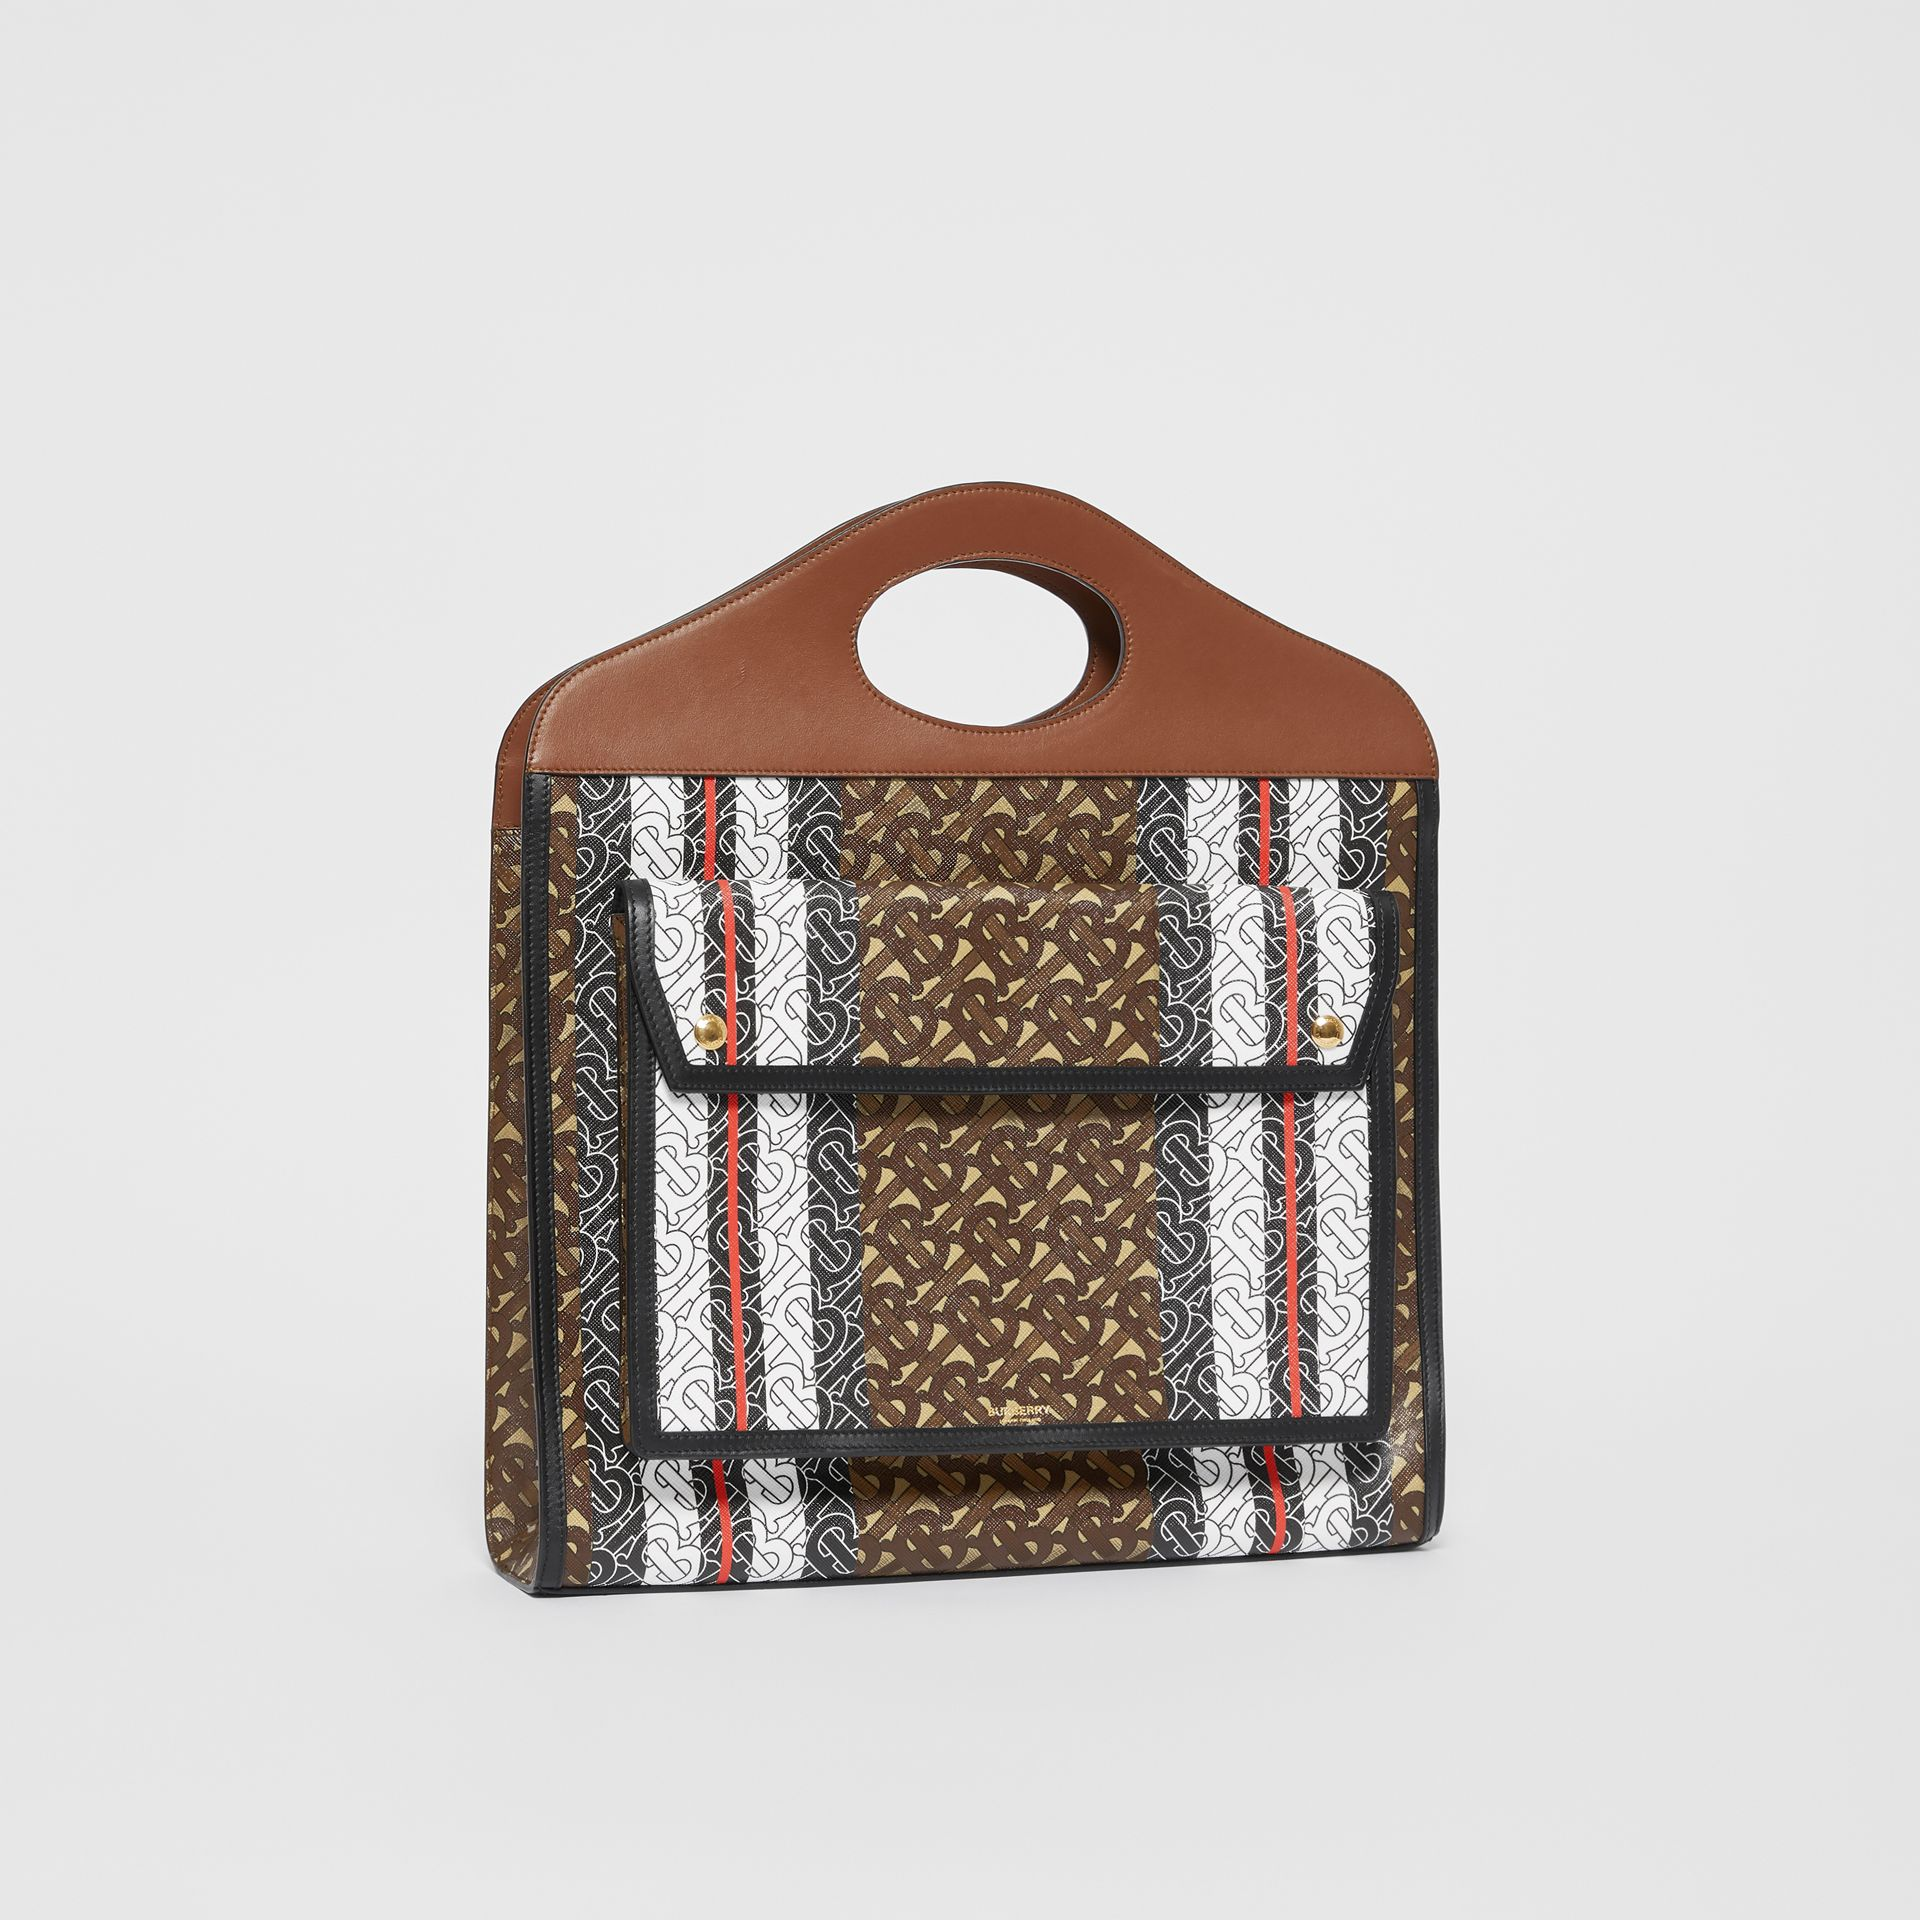 Medium Monogram Stripe E-canvas Pocket Bag in Bridle Brown - Women | Burberry Hong Kong S.A.R - gallery image 6